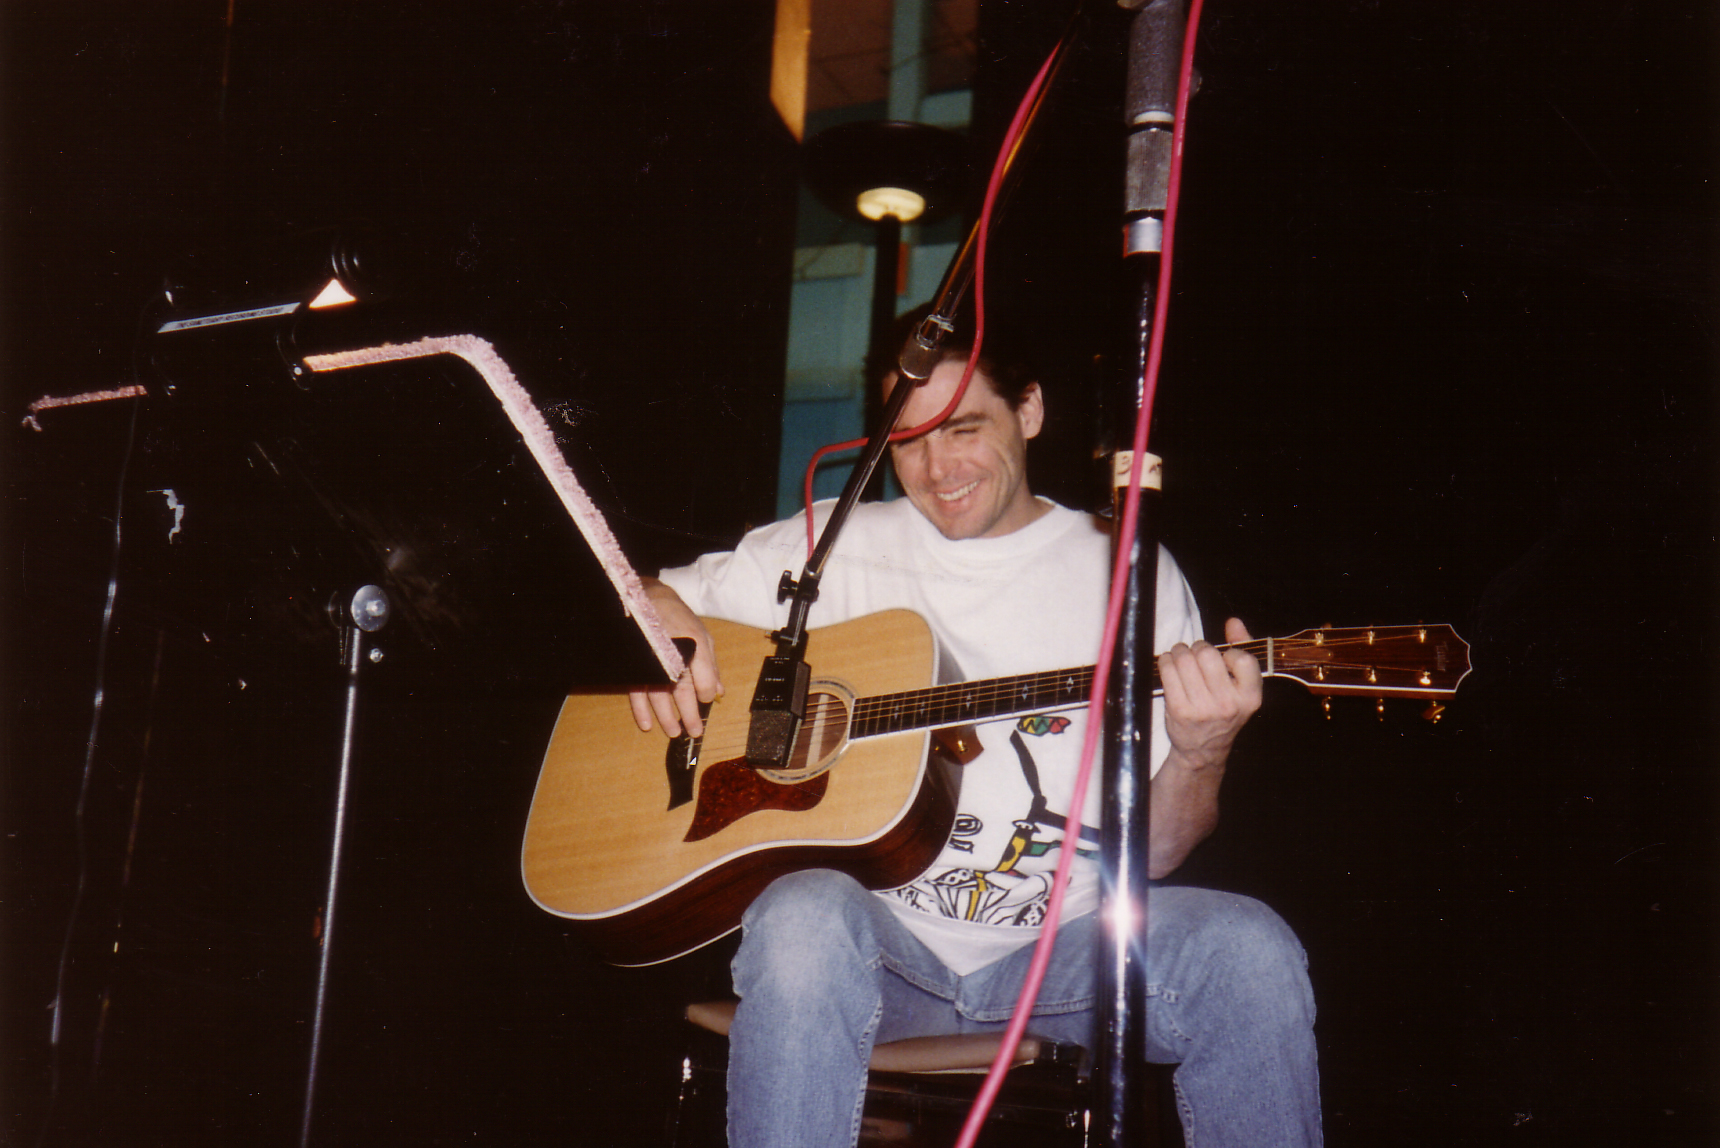 Recording Gray - Nashville, 1995